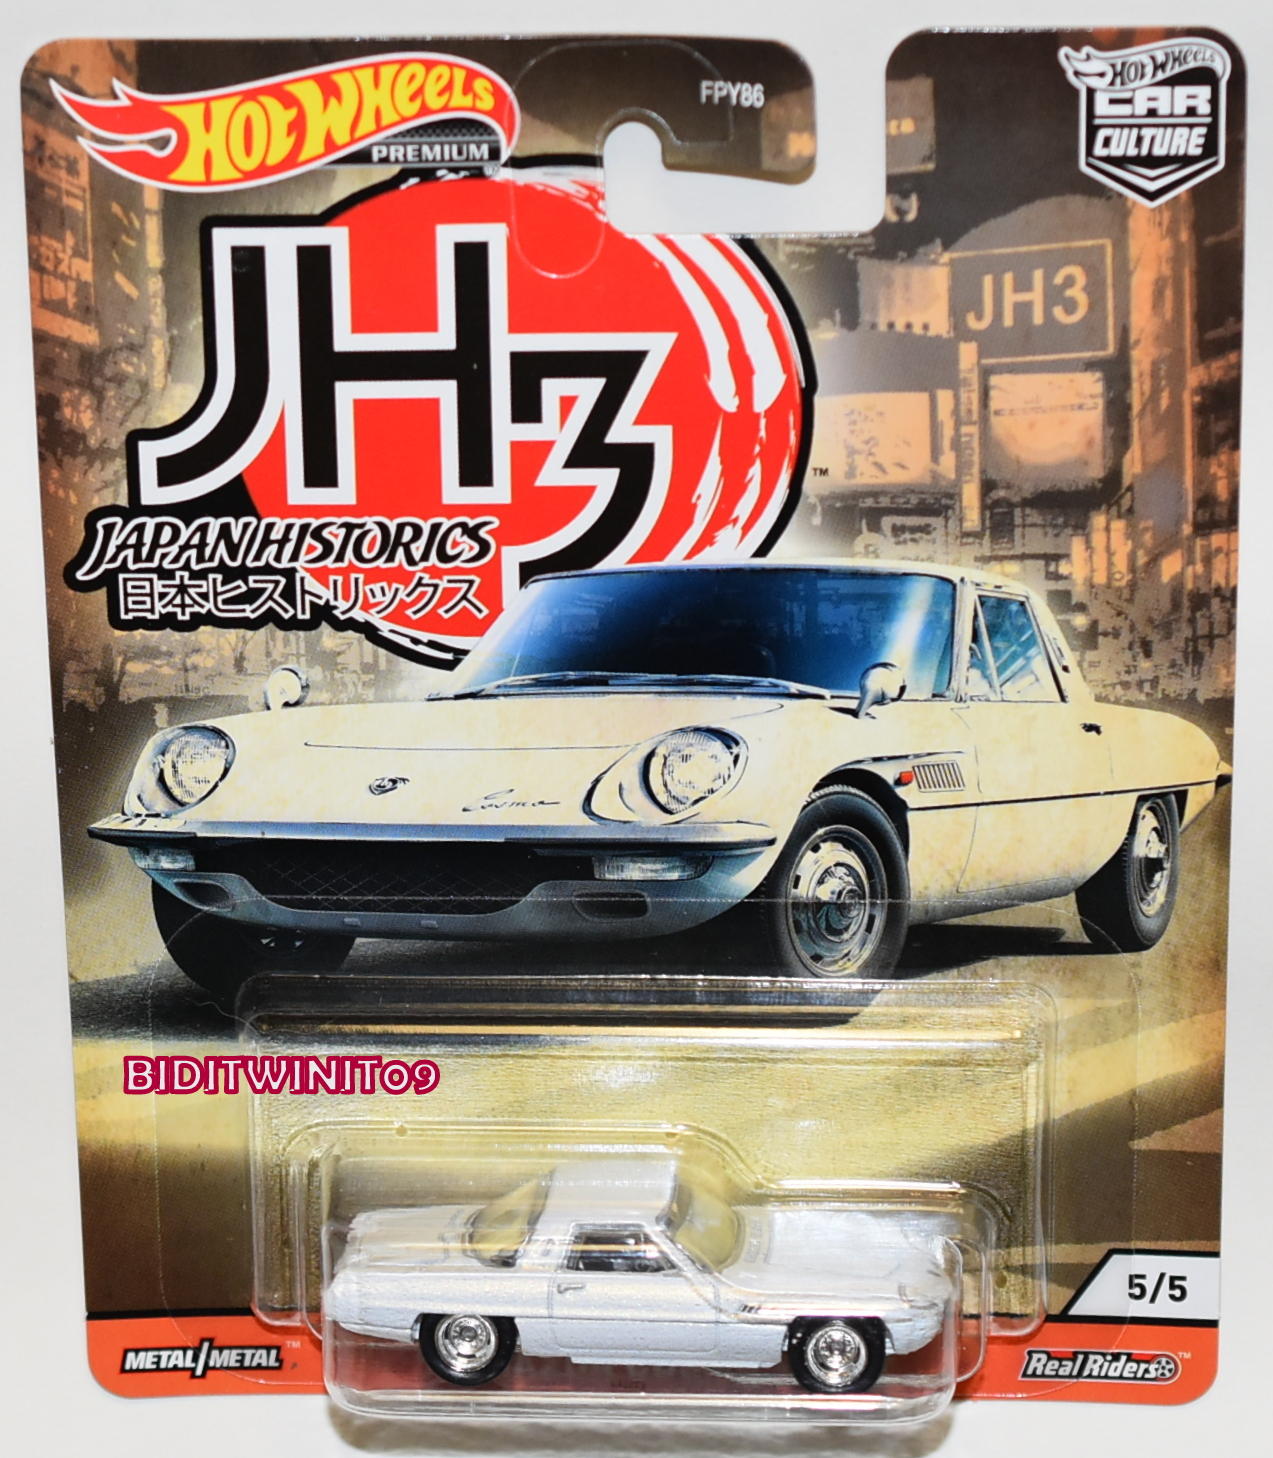 HOT WHEELS 2020 CAR CULTURE JAPAN HISTORICS 3 CASE P '68 MAZDA COSMO SPORT